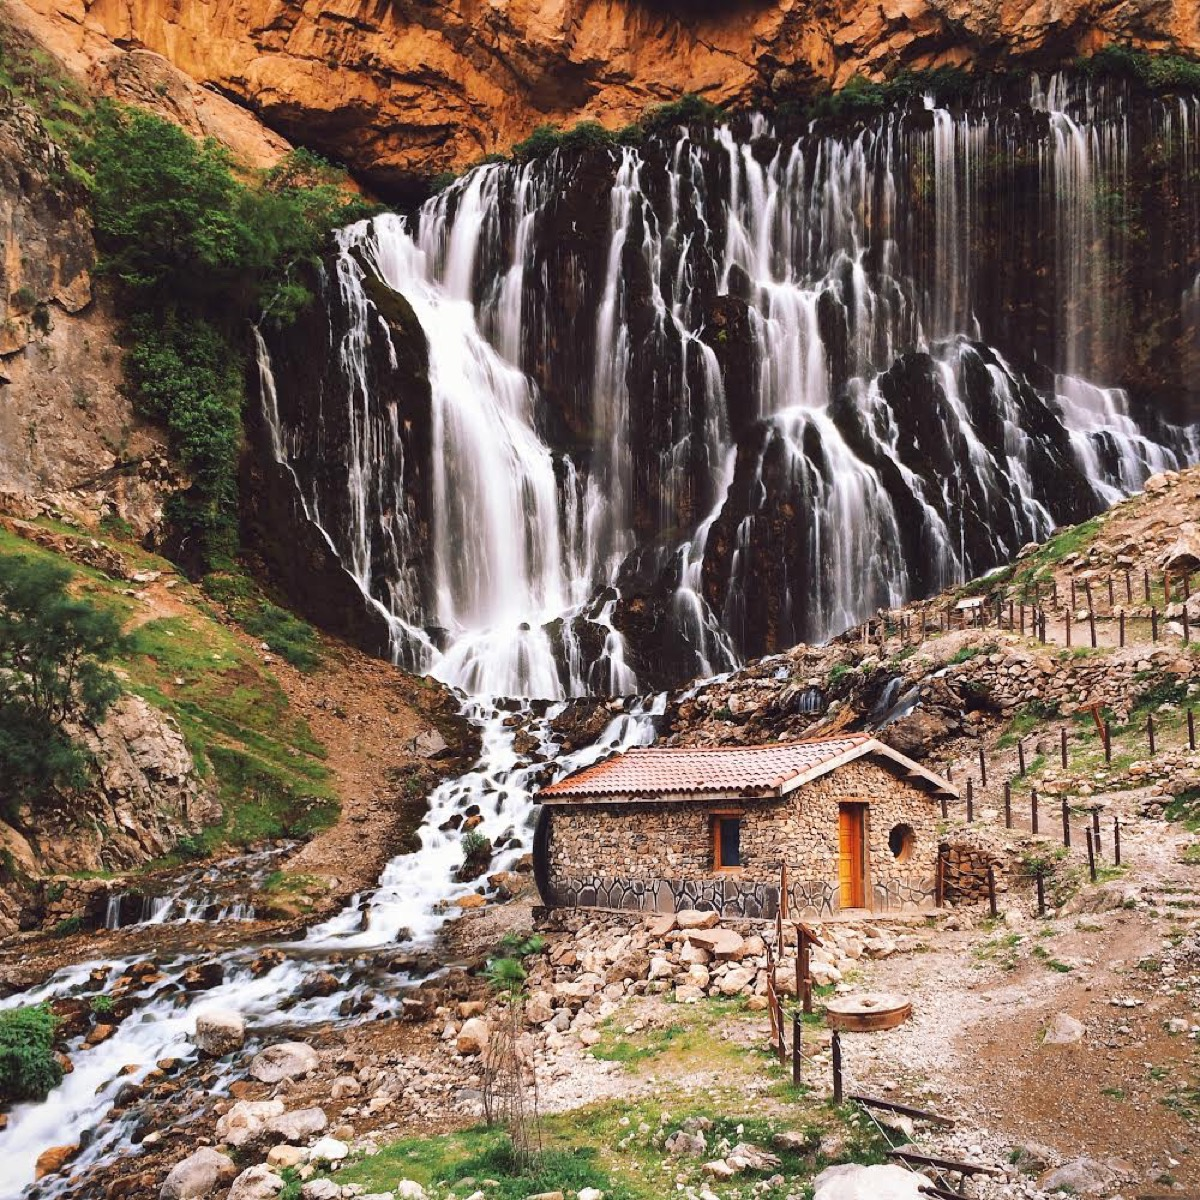 Dan Rubin photo of small hut in front of waterfall